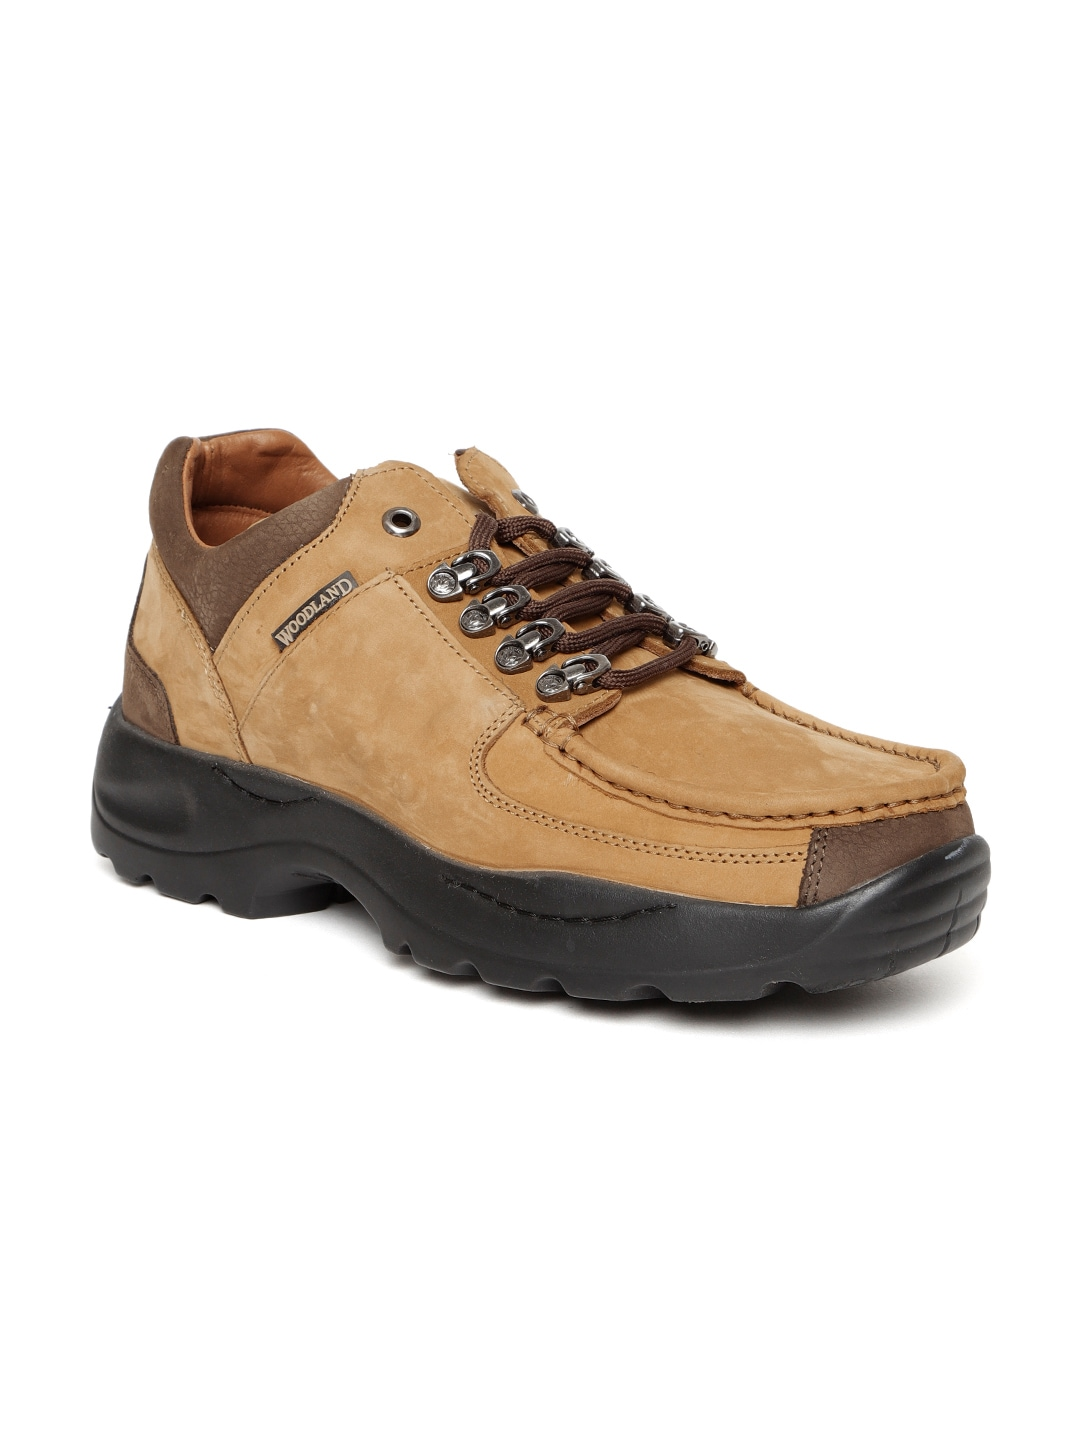 Trekking Shoes - Buy Trekking Shoes online in India 00f40a95d